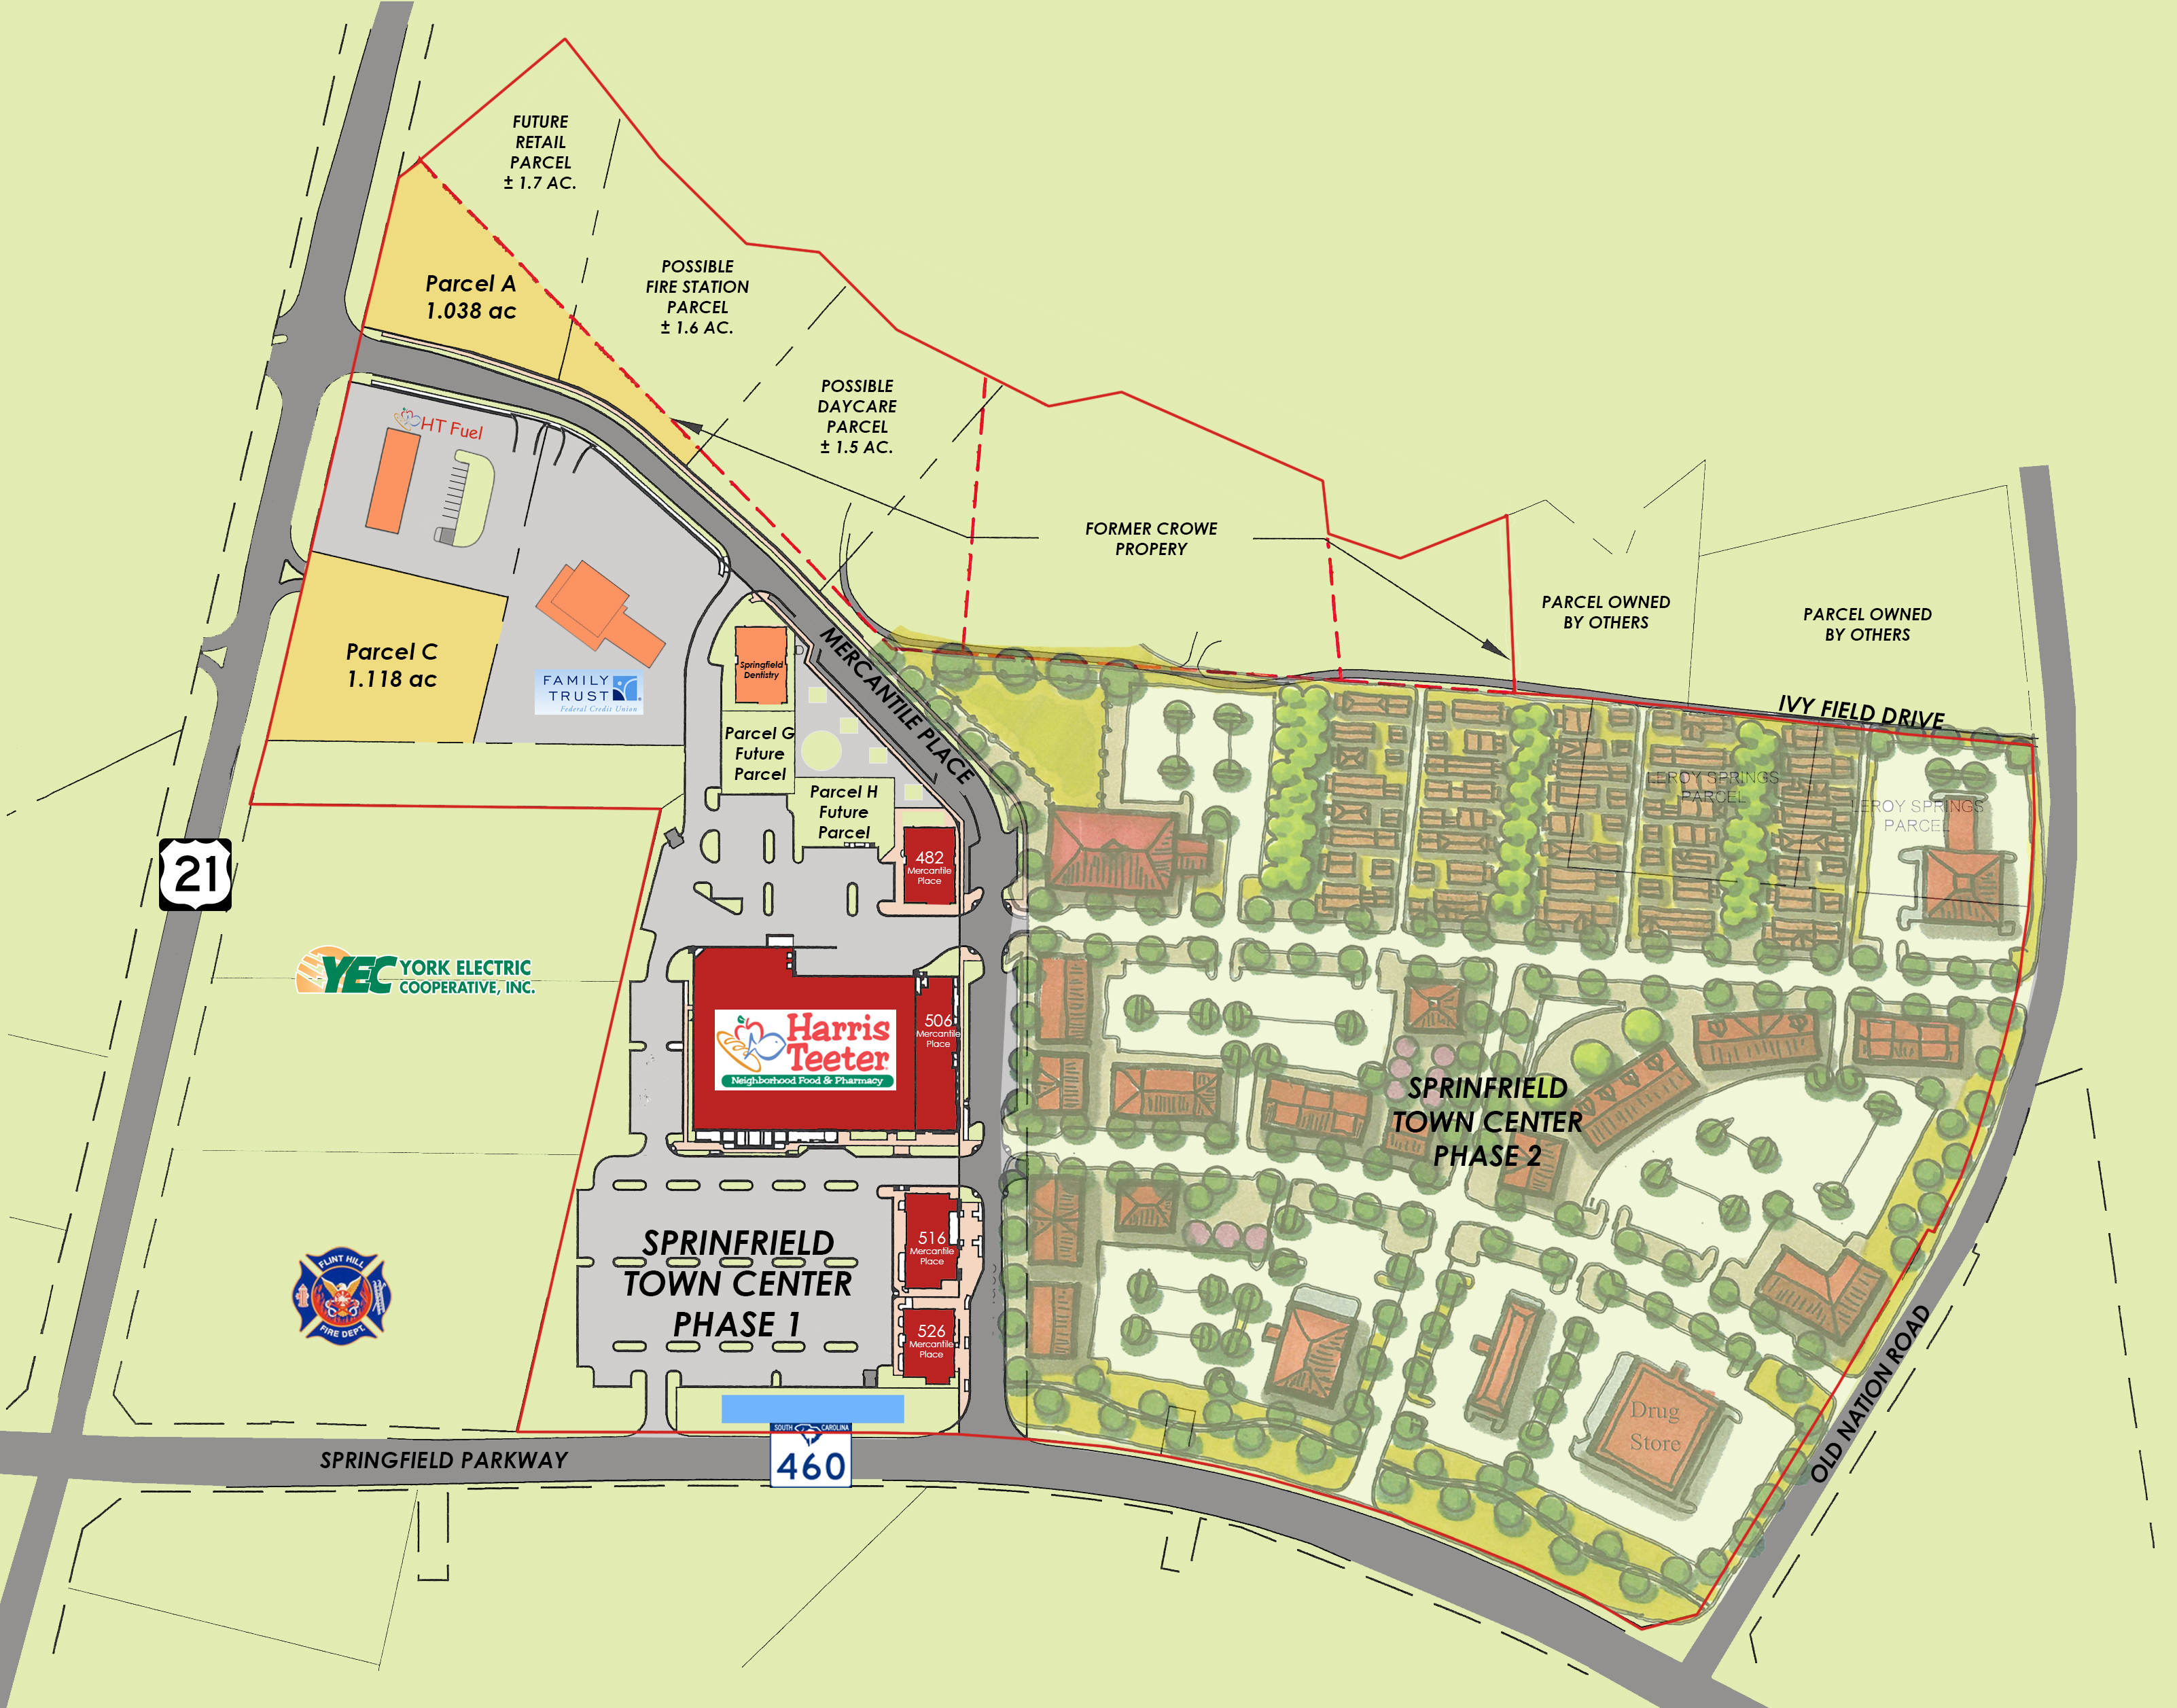 OUTPARCELS FOR SALE AT SPRINGFIELD TOWN CENTER